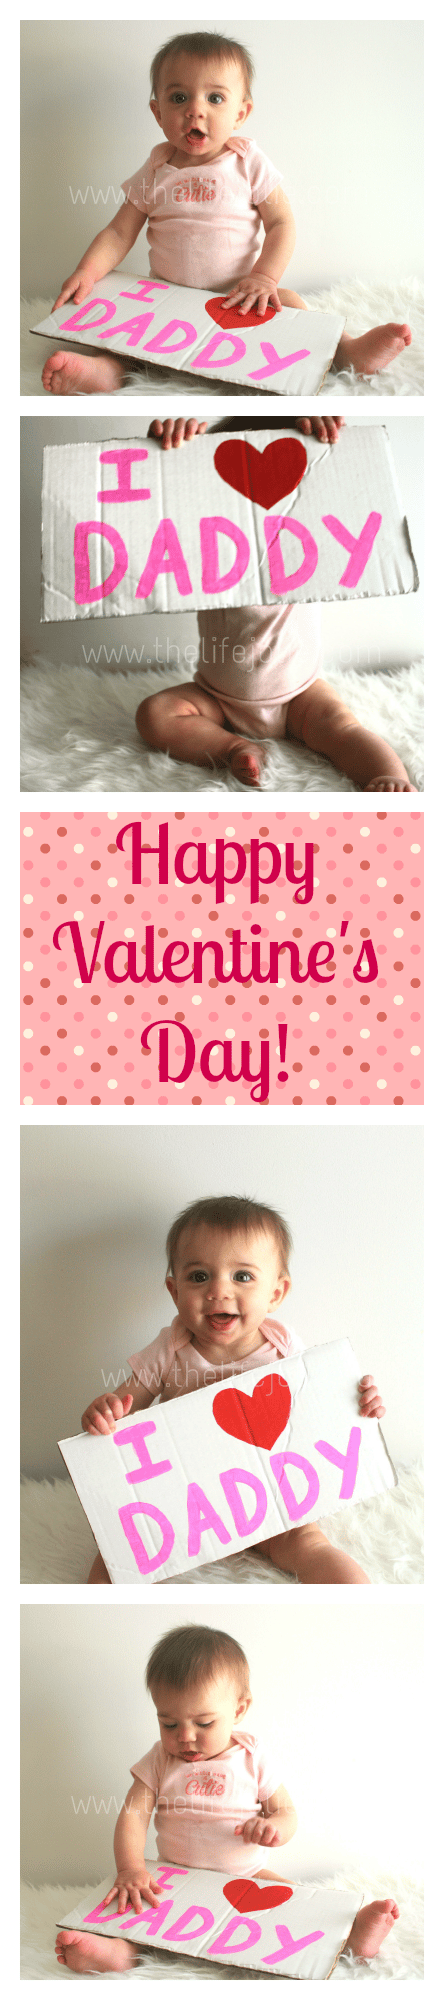 Such a cute surprise for a new Daddy on Valentine's day! www.thelifejolie.com